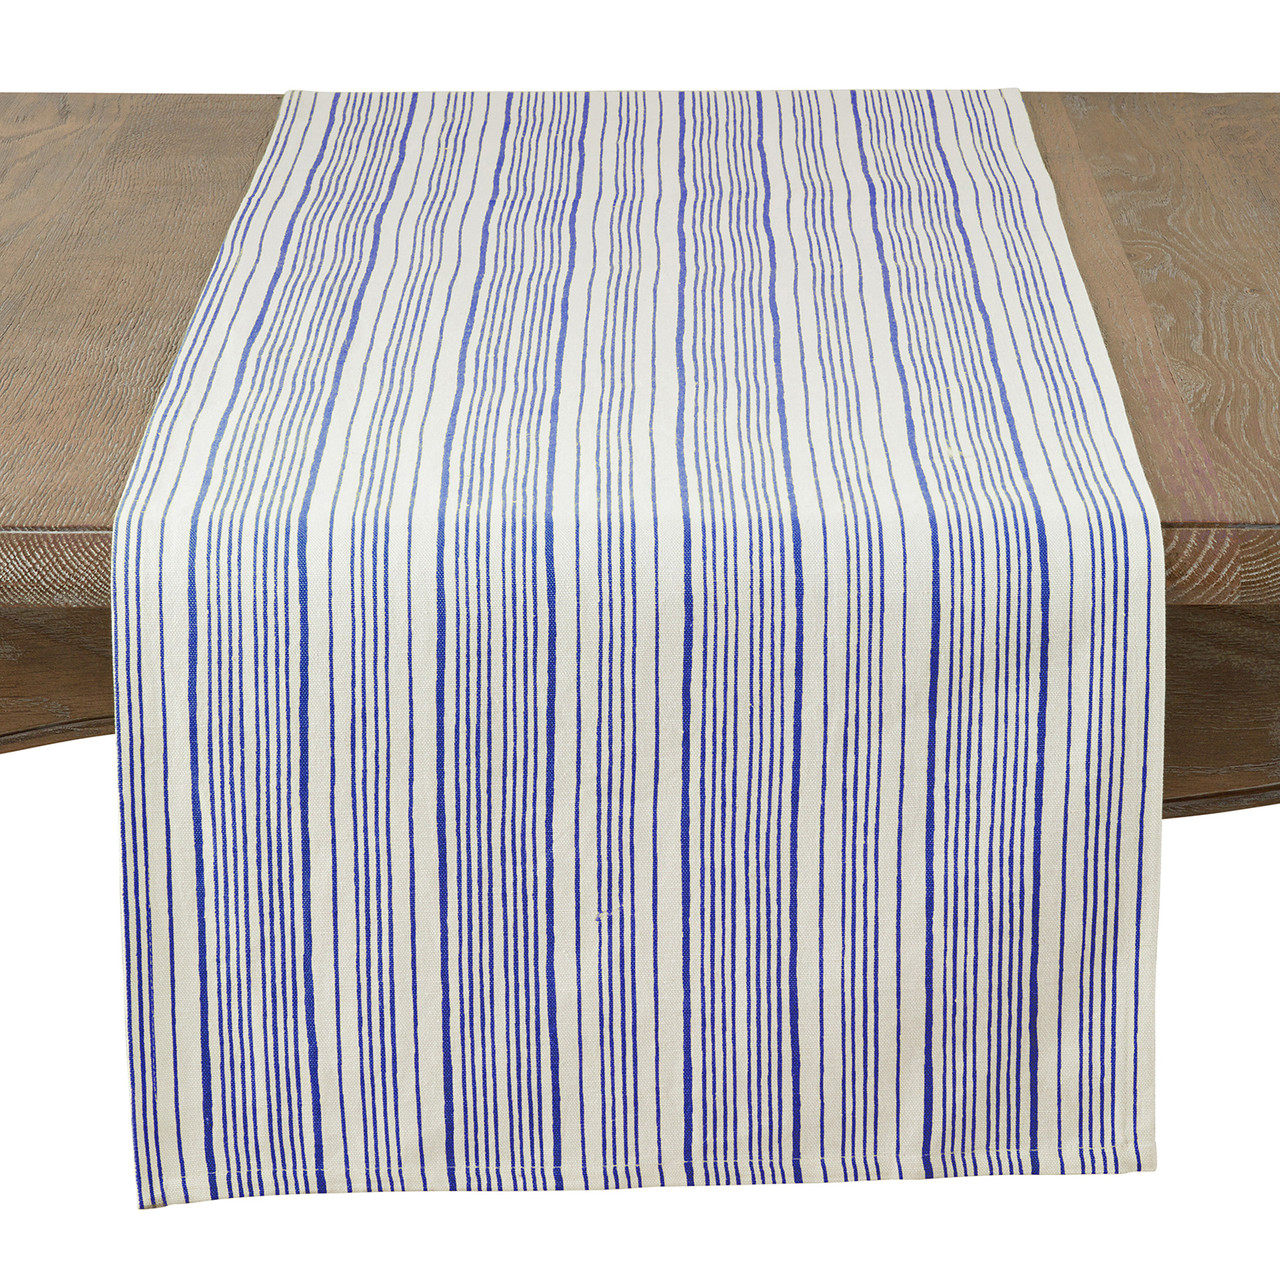 Fennco Styles Nastro Collection Modern Block Striped 100 Pure Cotton Table Runner 16 X 72 Inch Navy Blue Table Runner For Banquets Diner Parties